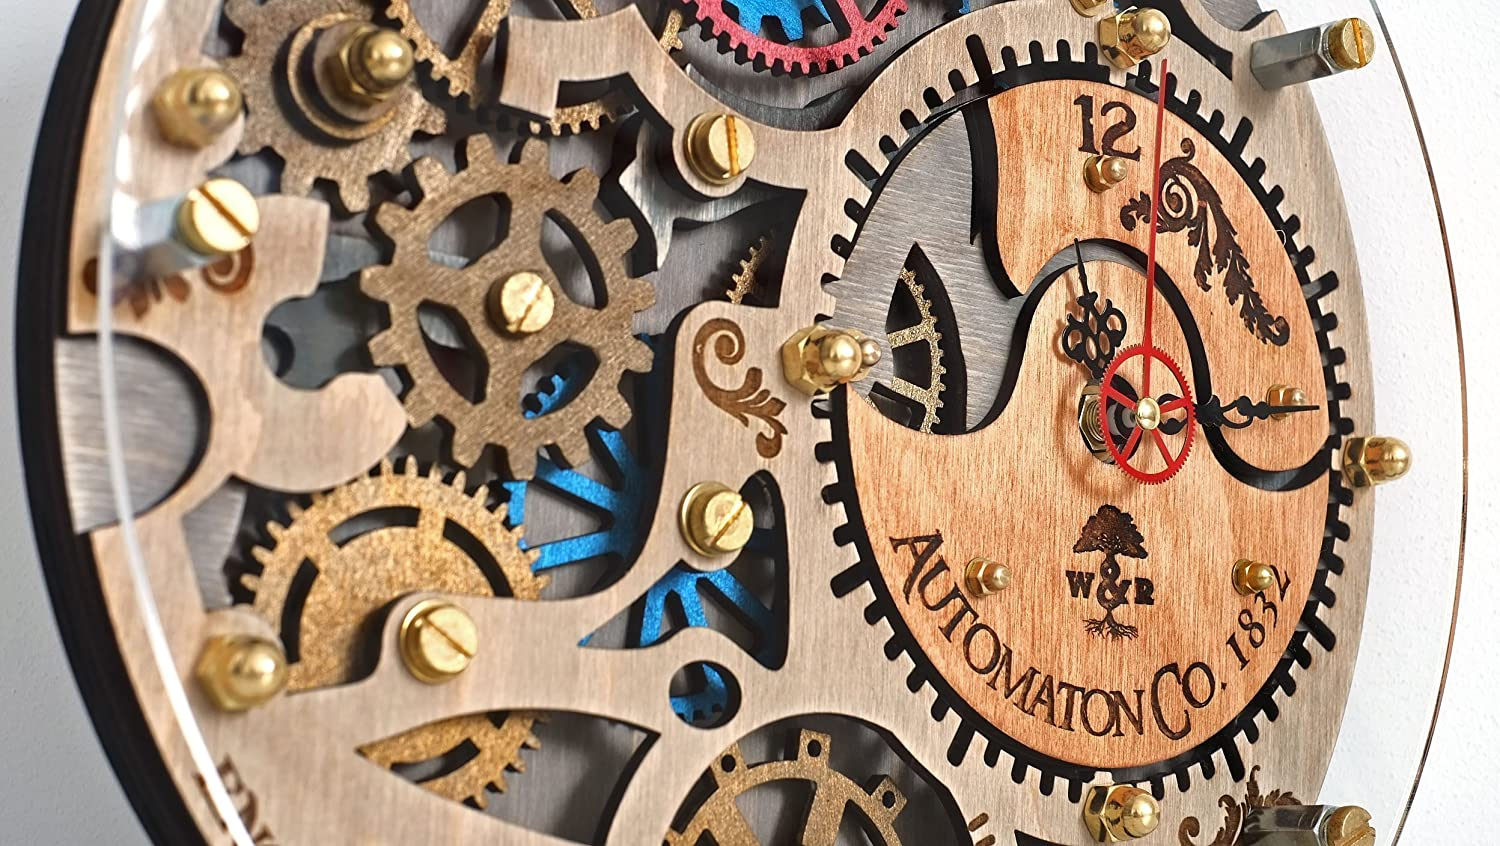 Amazon automaton wall clock 1832 handcrafted by woodandroot amazon automaton wall clock 1832 handcrafted by woodandroot unique industrial wooden decorotive personalized gift steampunk one of a kind amipublicfo Images